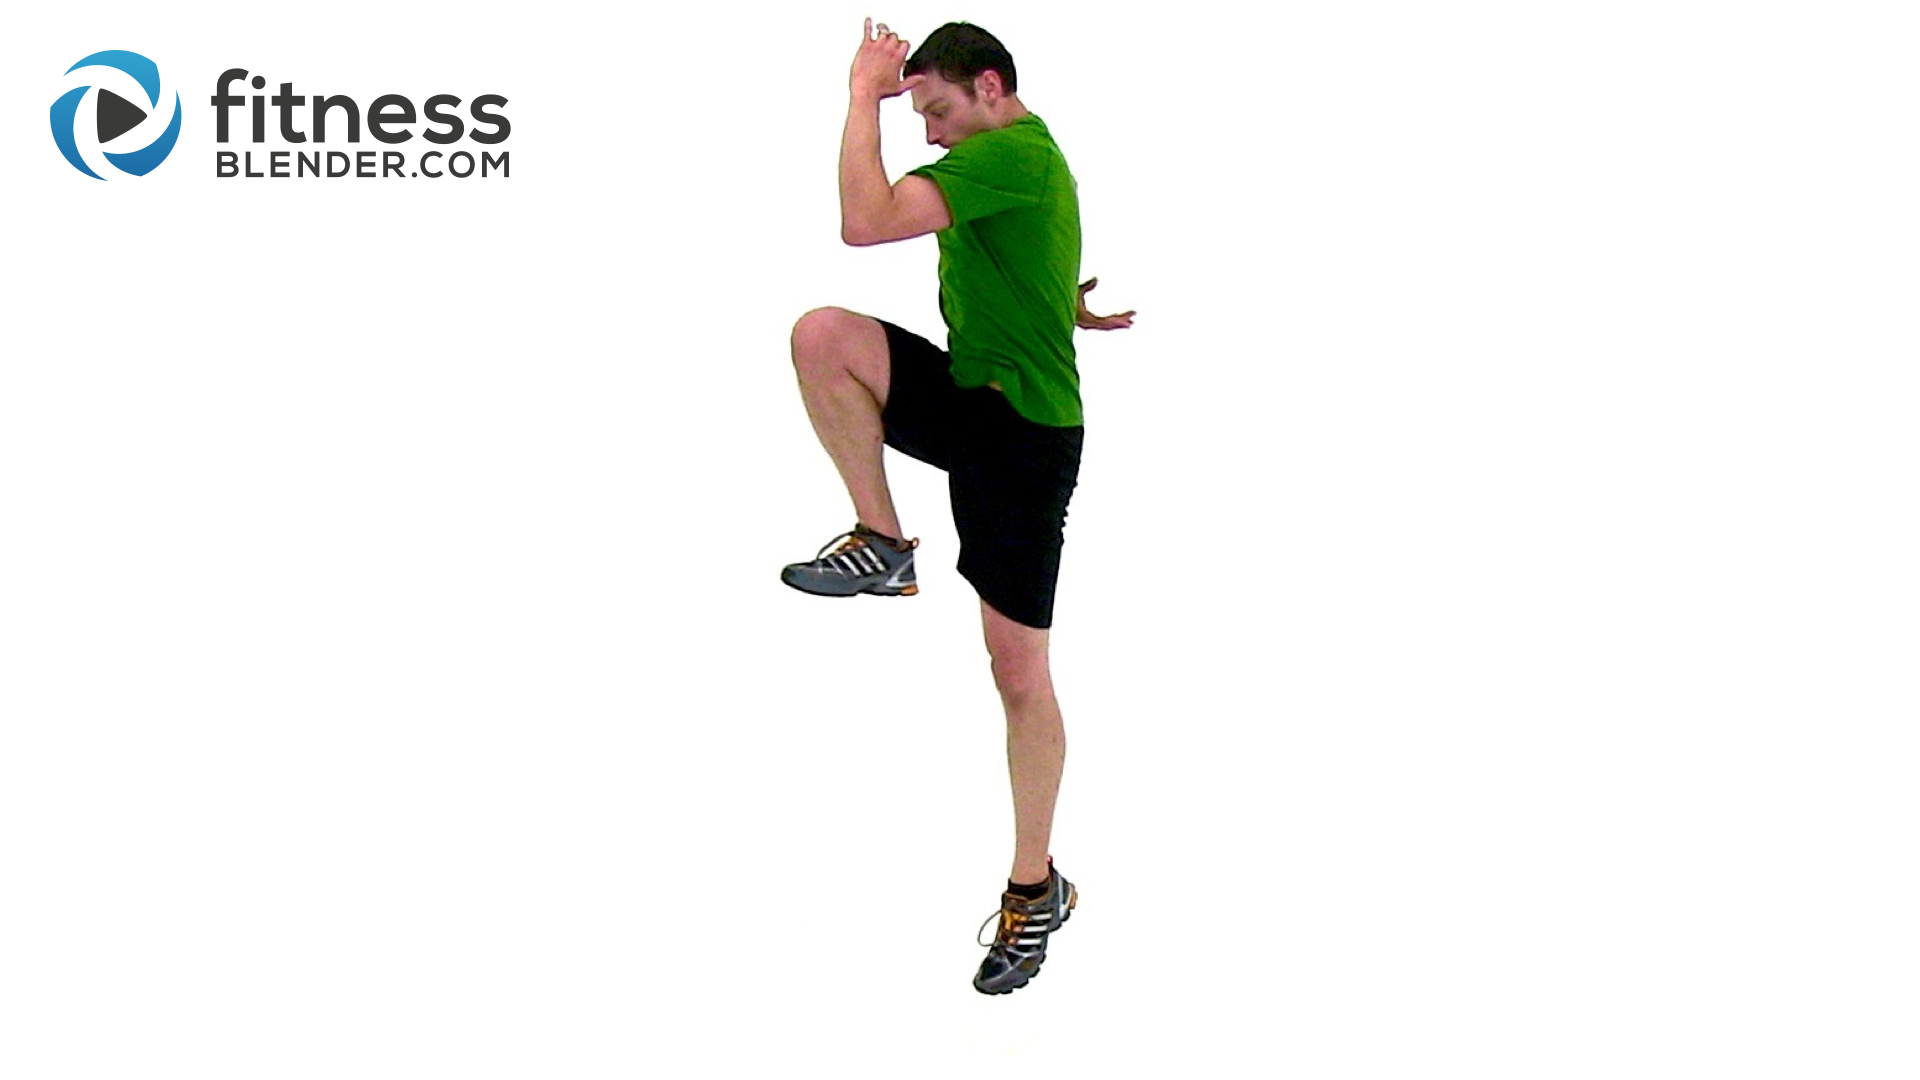 Plyometric And Cardio Hiit For Legs Functional Plyometrics Endurance Fitness Blender